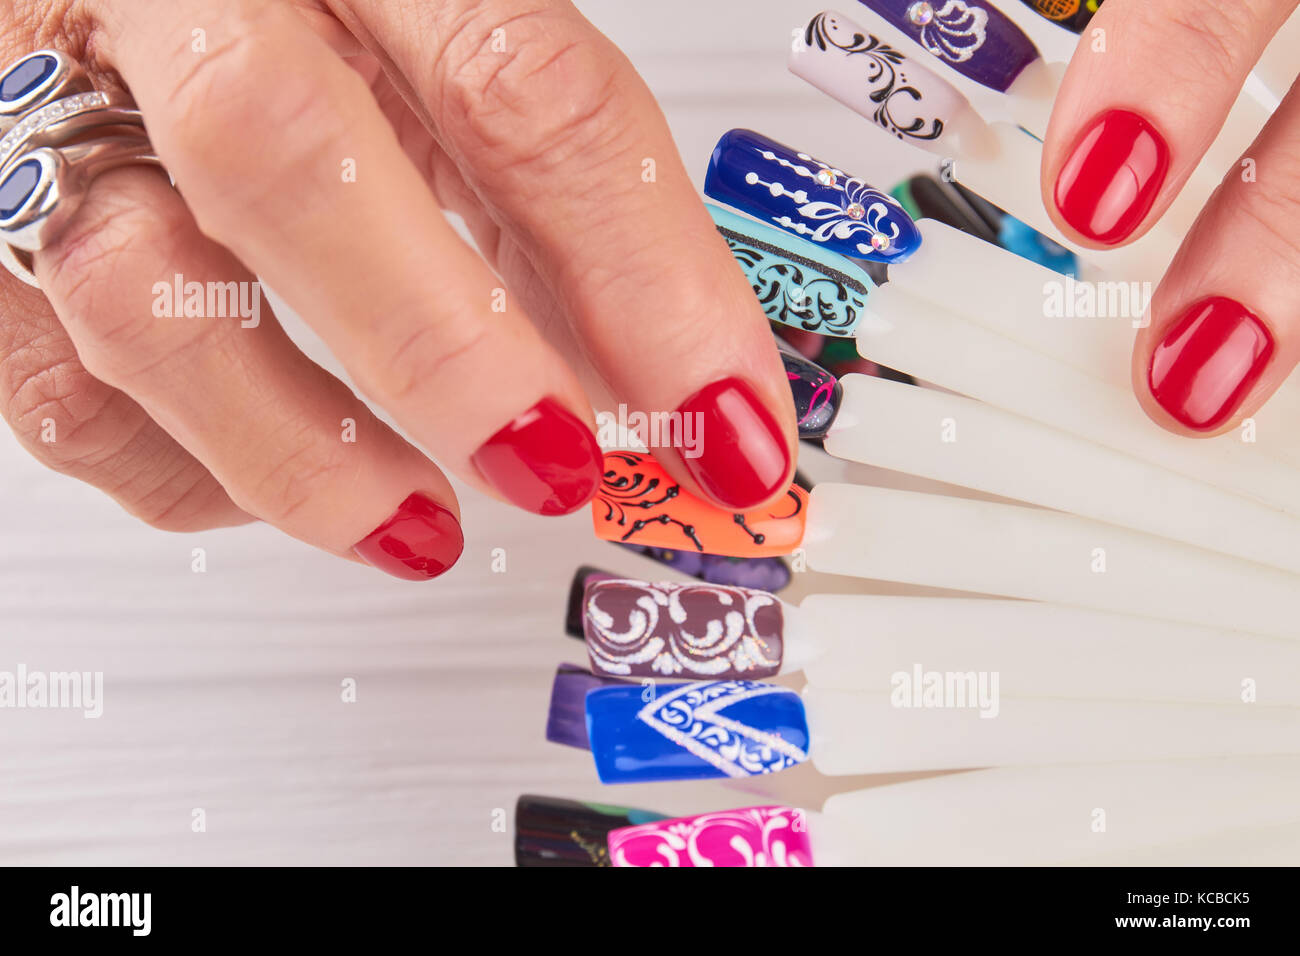 Manicured hands, nail art samples close up Stock Photo: 162520601 ...